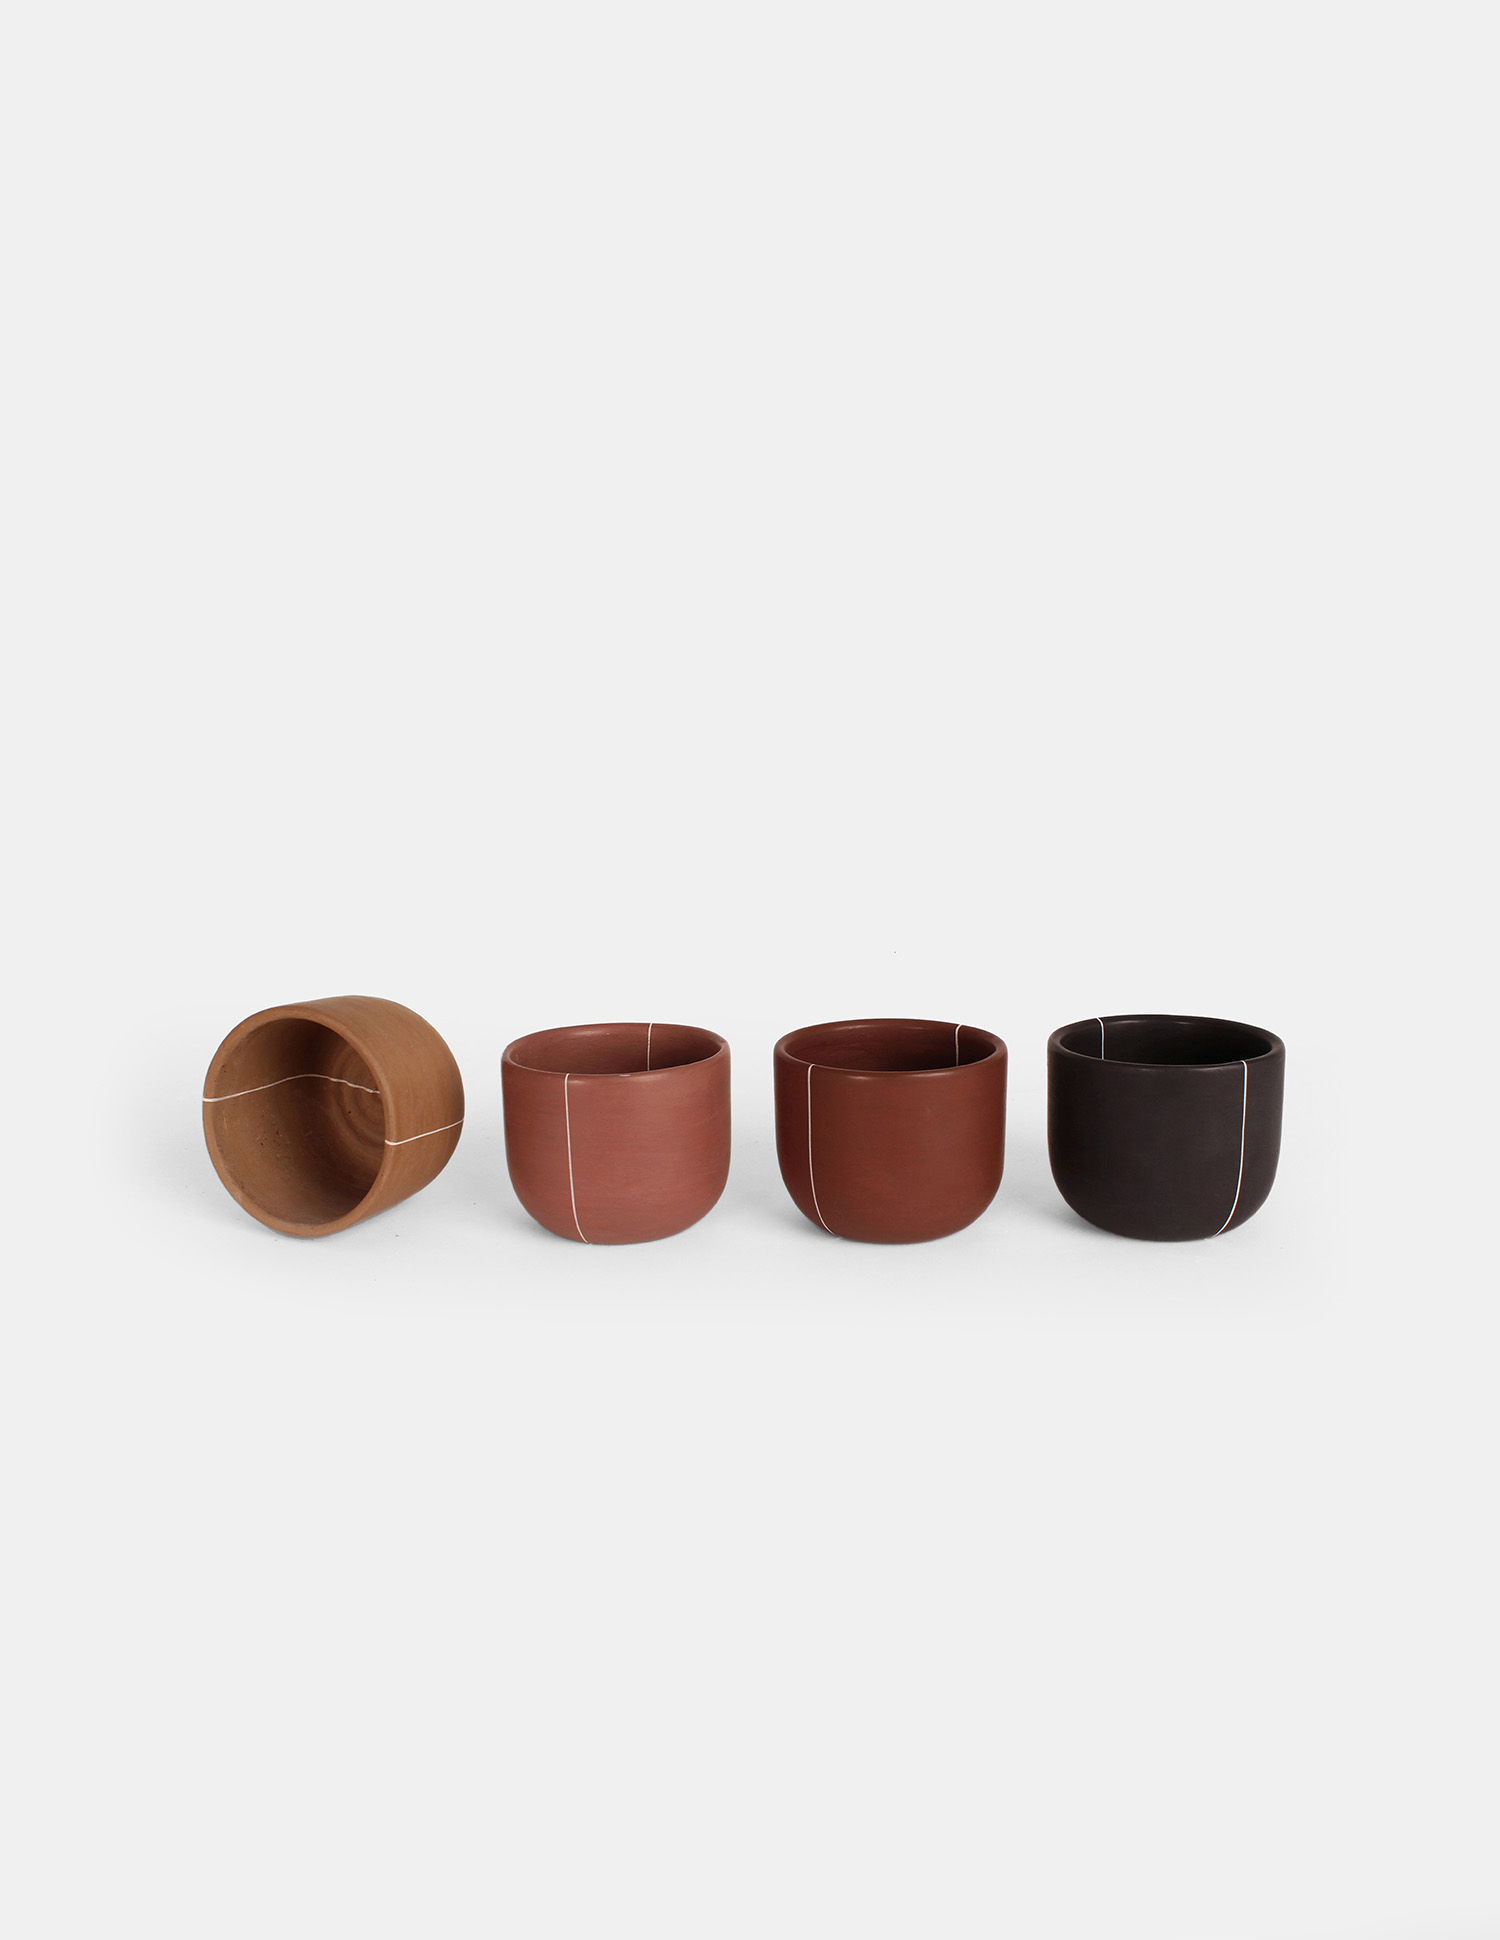 cacao cups, mexican crafted design